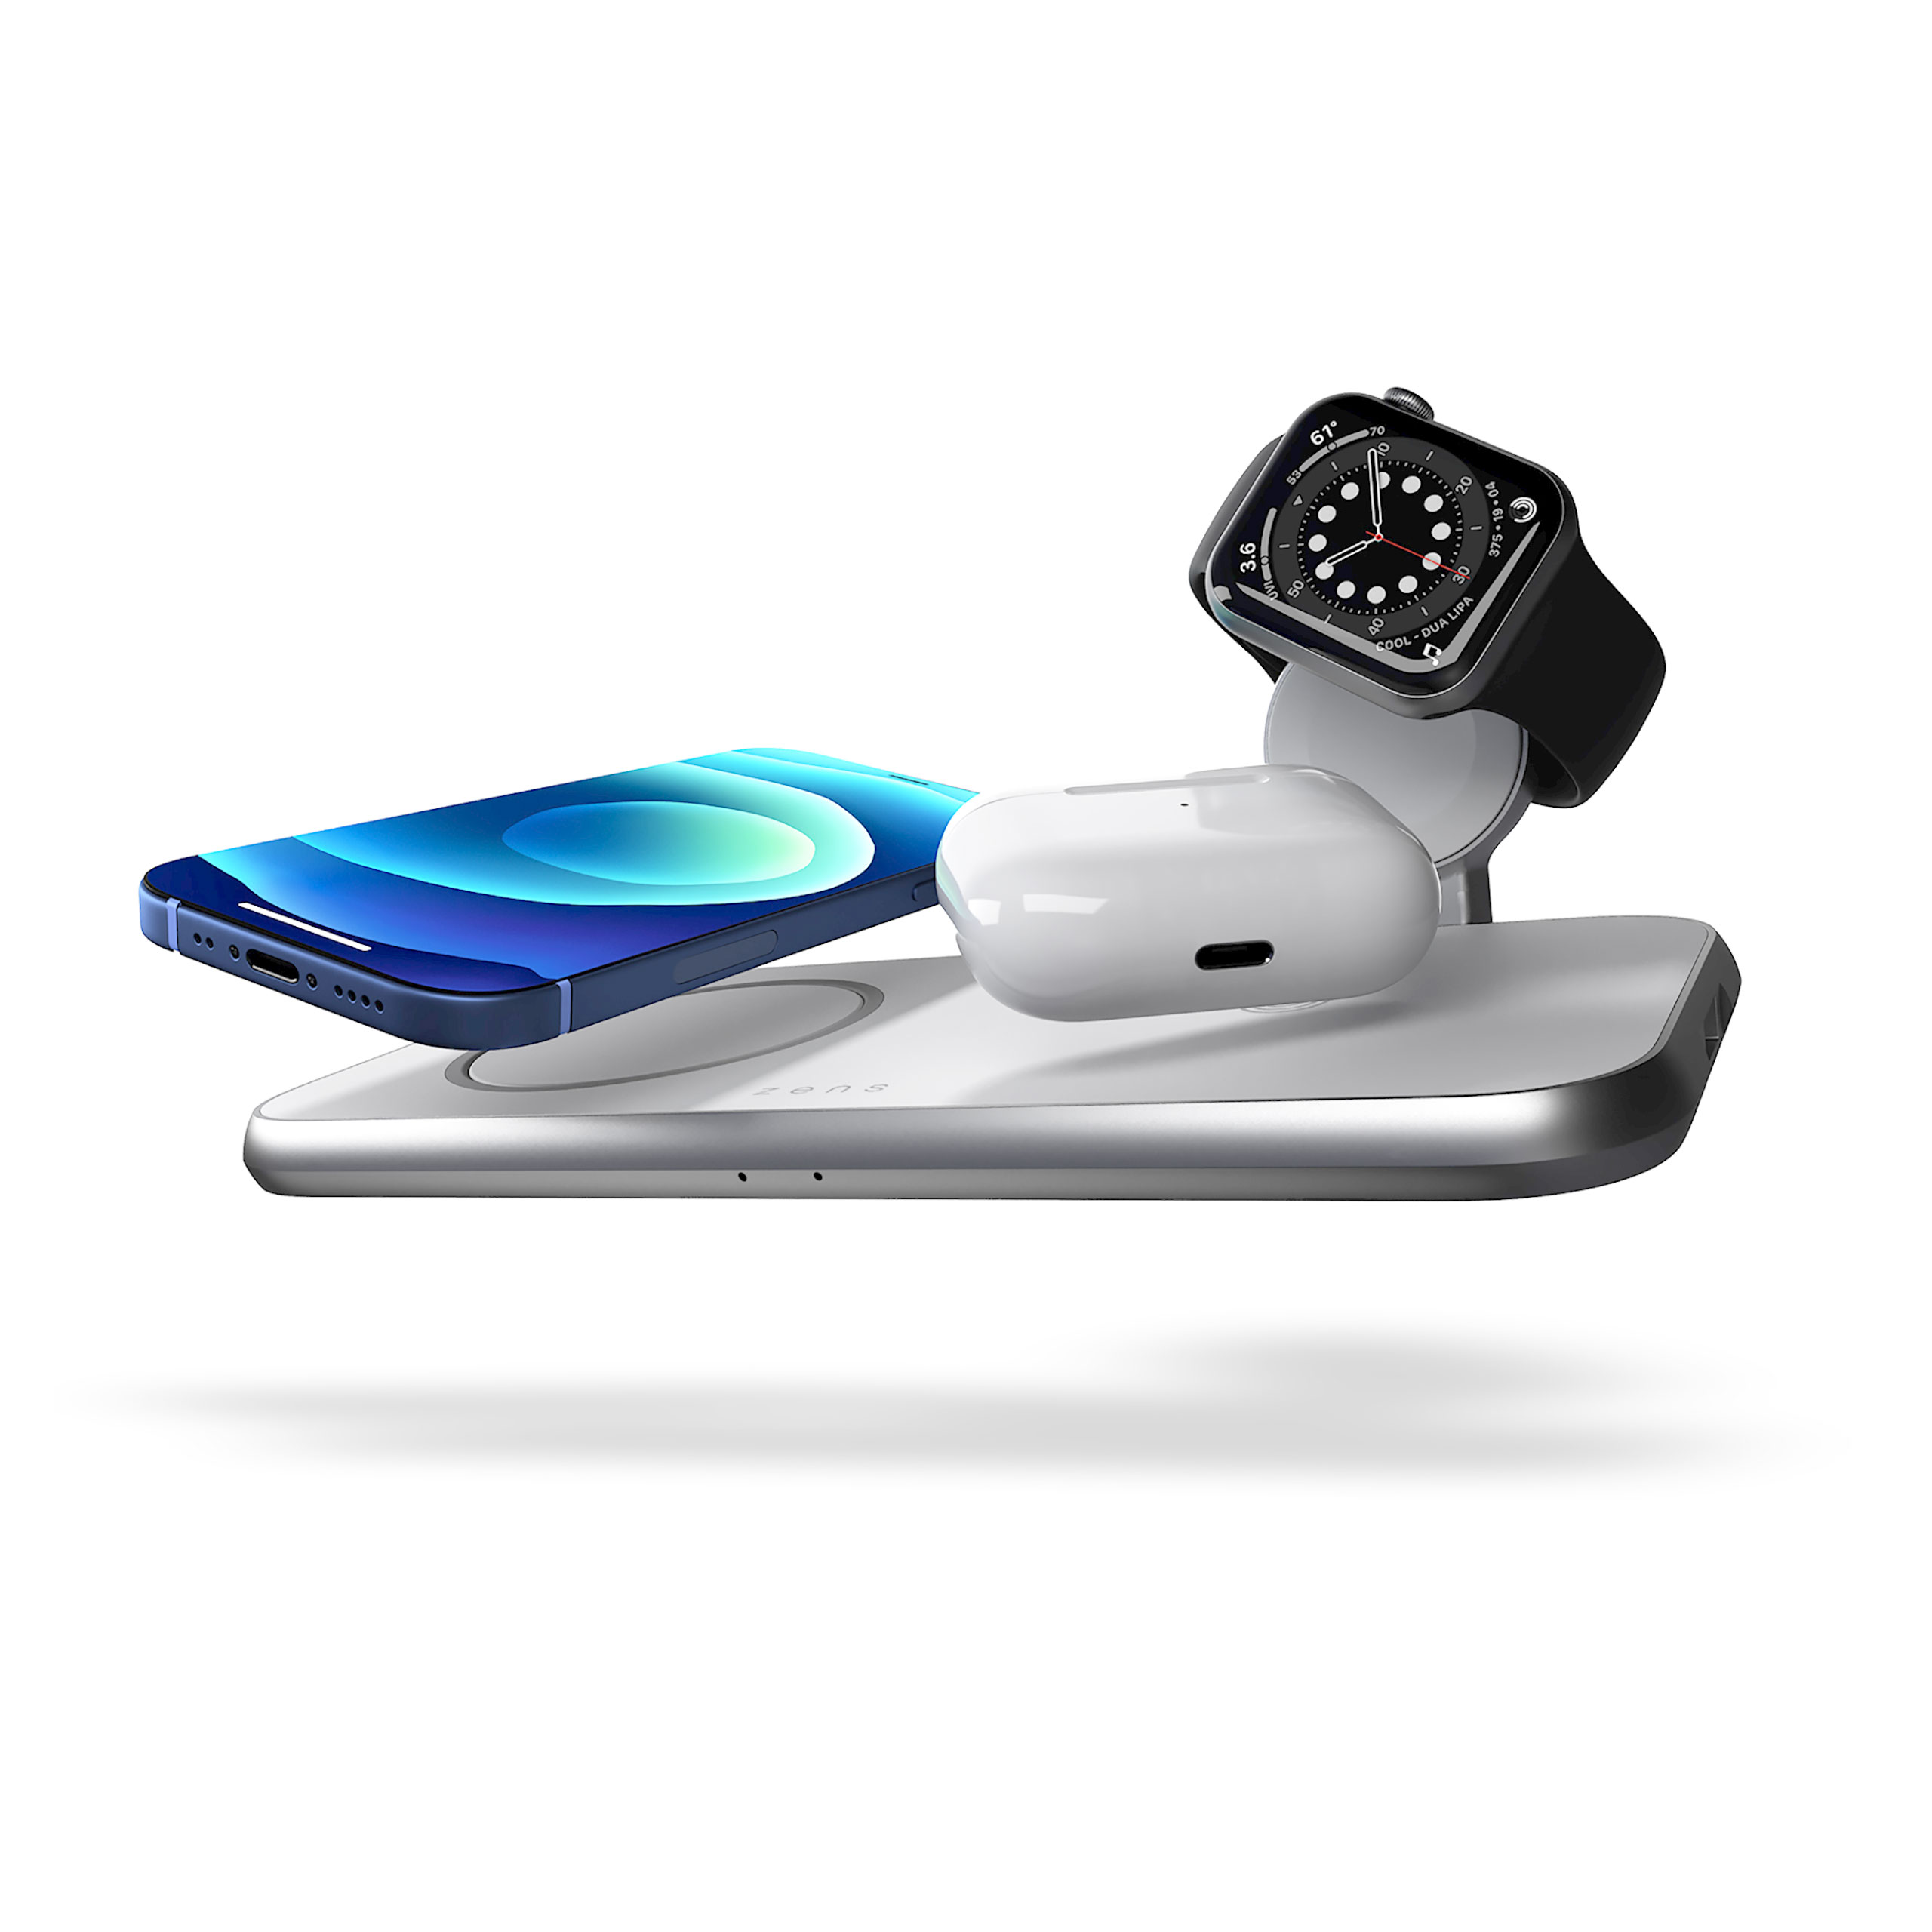 ZEDC17W - Zens 4-in-1 MagSafe Wireless Charger with devices